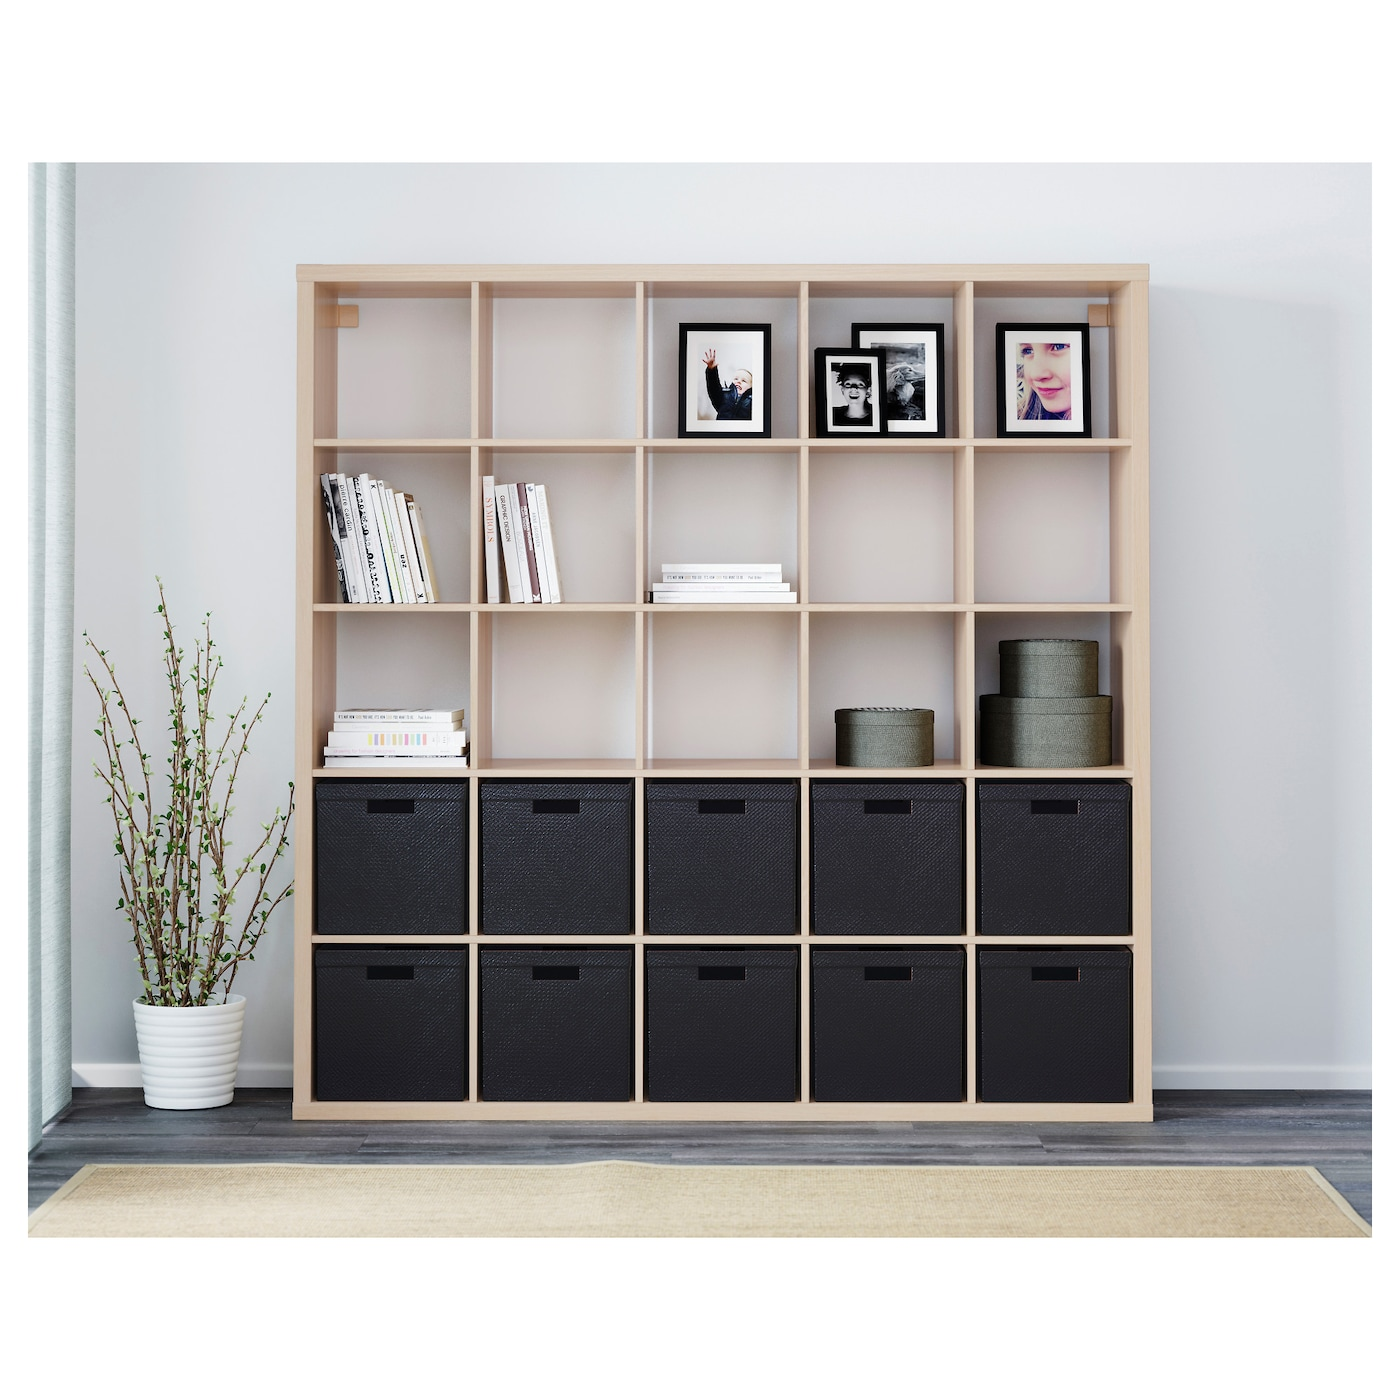 kallax shelving unit white stained oak effect 182x182 cm ikea. Black Bedroom Furniture Sets. Home Design Ideas